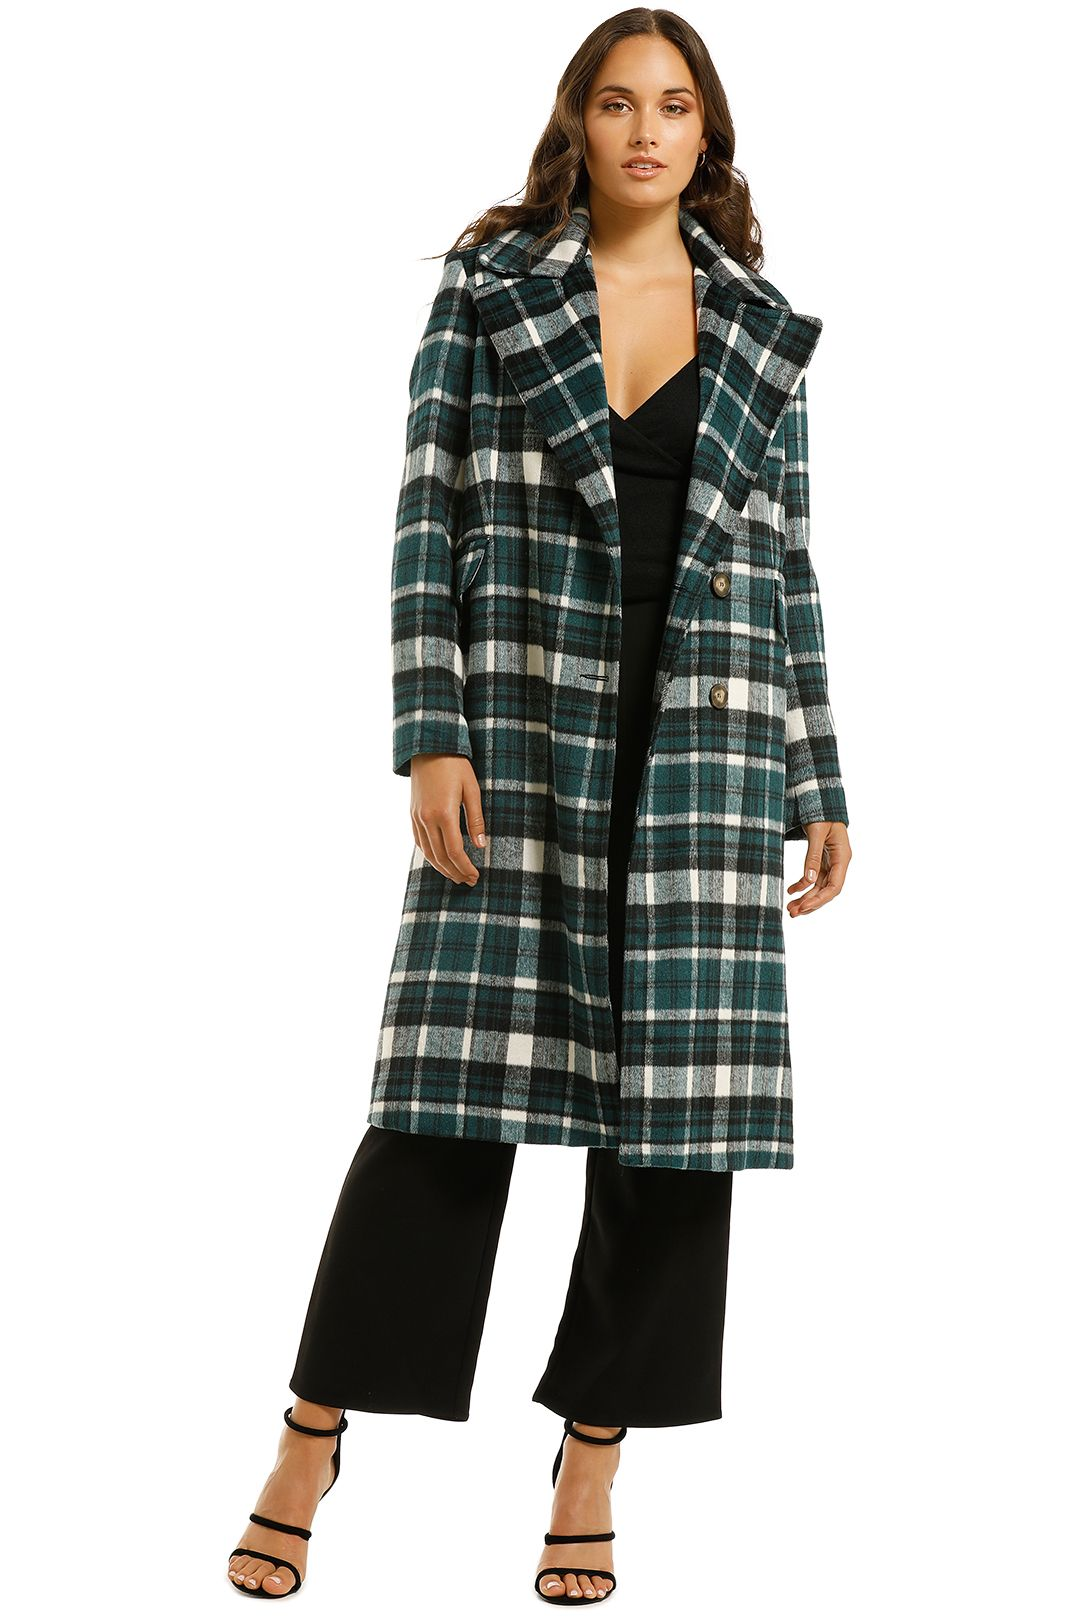 Curate-by-Trelise-Cooper-Little-Coaty-Coat-Green-Check-Front